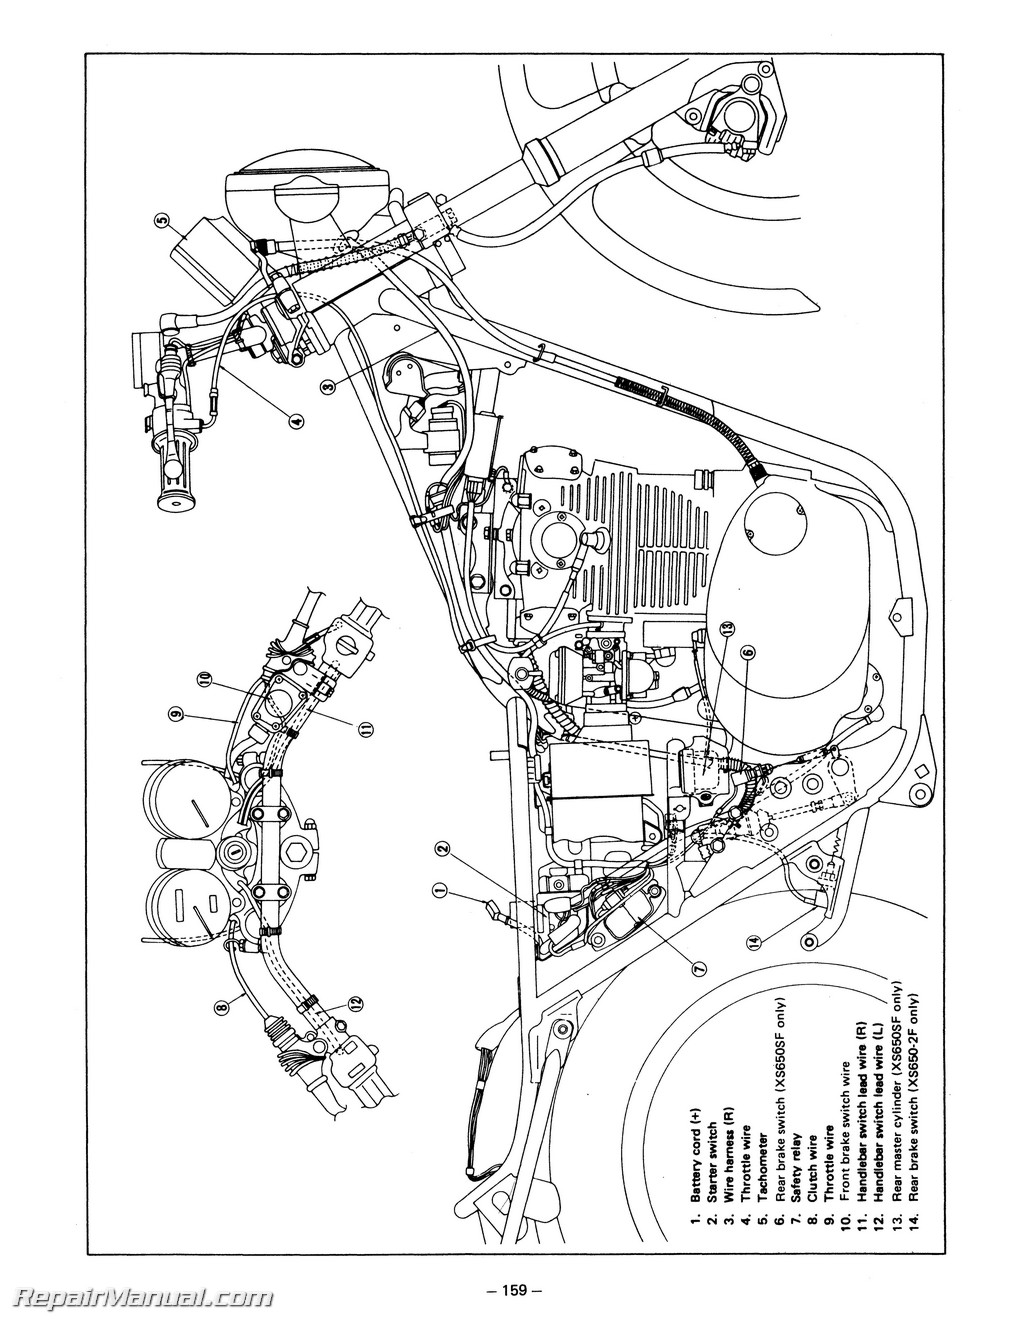 1981 Yamaha Xs650 Ignition Wiring Diagram Library Zuma